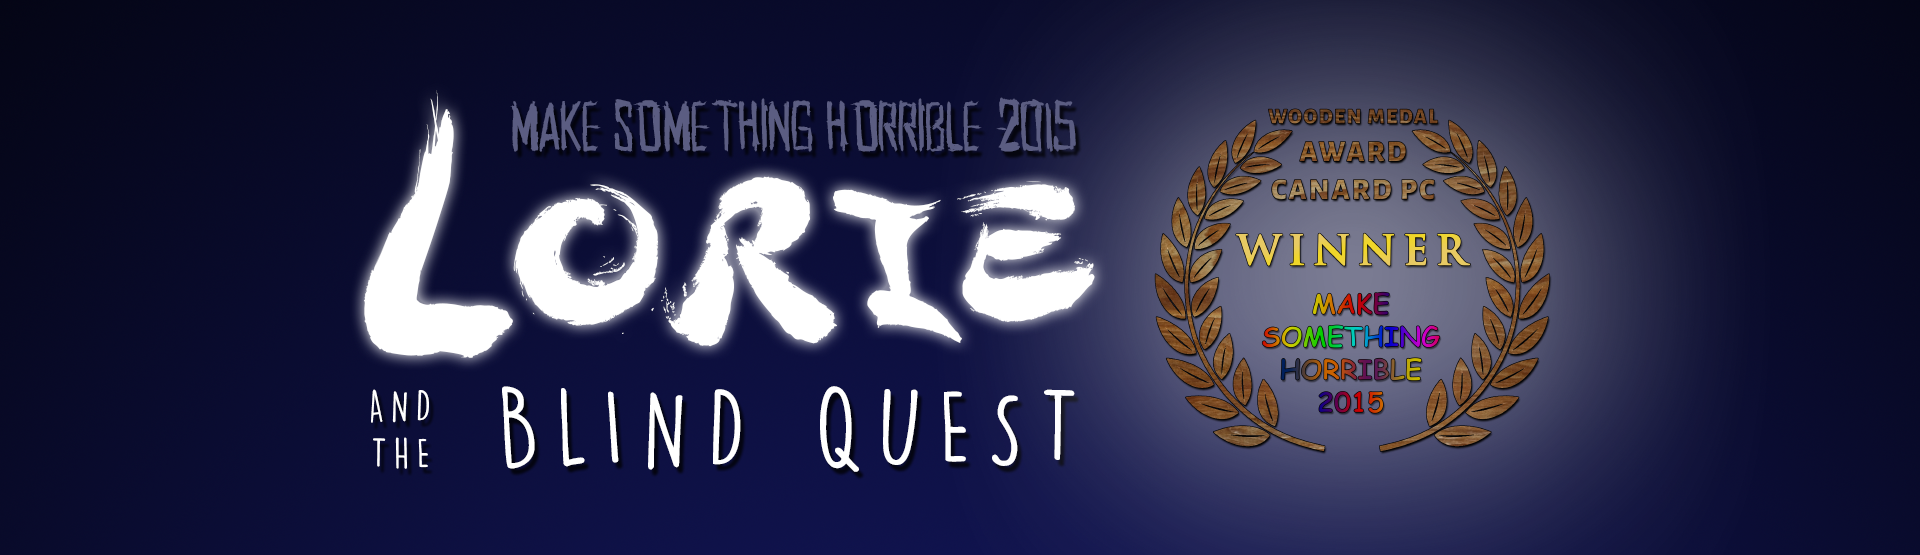 Lorie and the Blind Quest